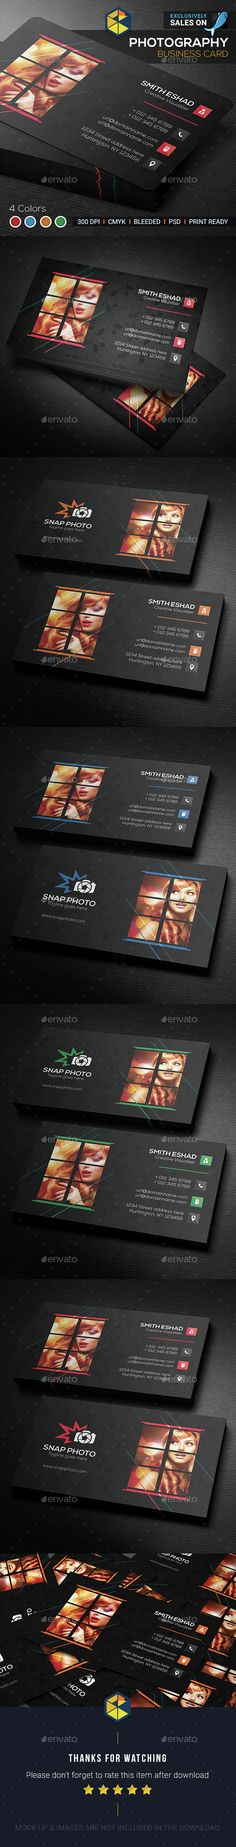 Photography Business Card Template PSD. Download here: http://graphicriver.net/item/photography-business-card/14993717?ref=ksioks